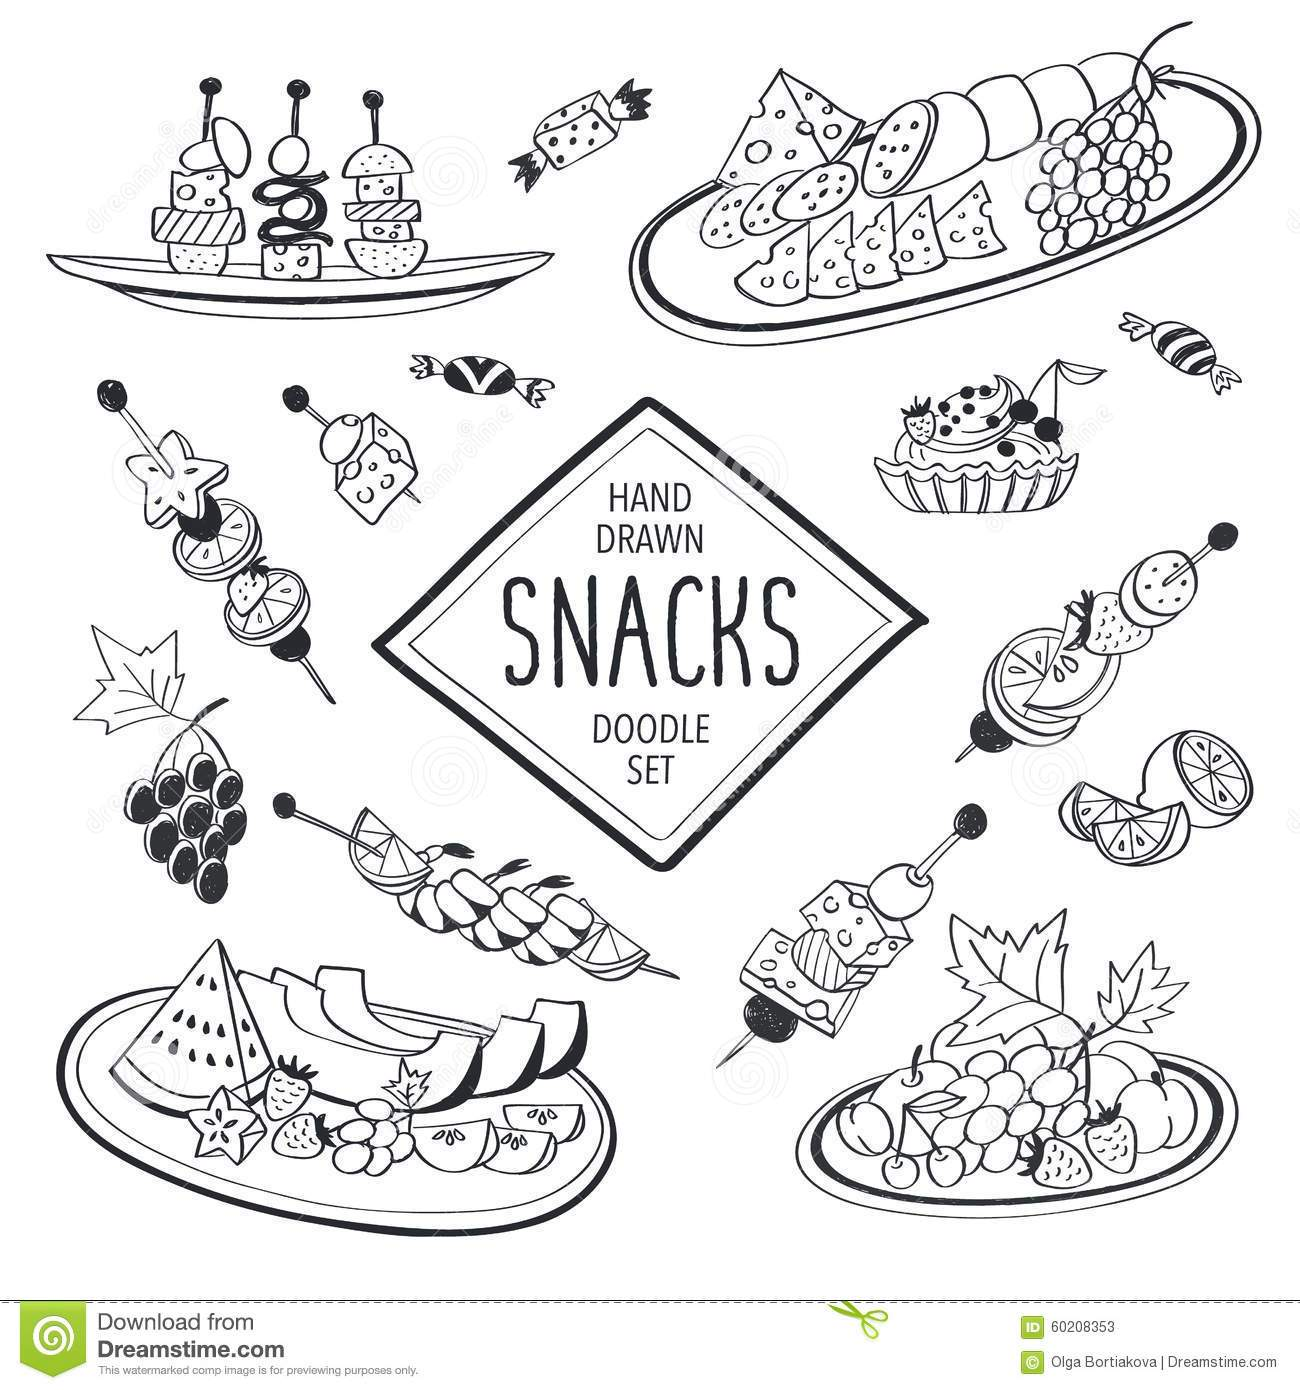 Snacks clipart black and white 3 » Clipart Portal.